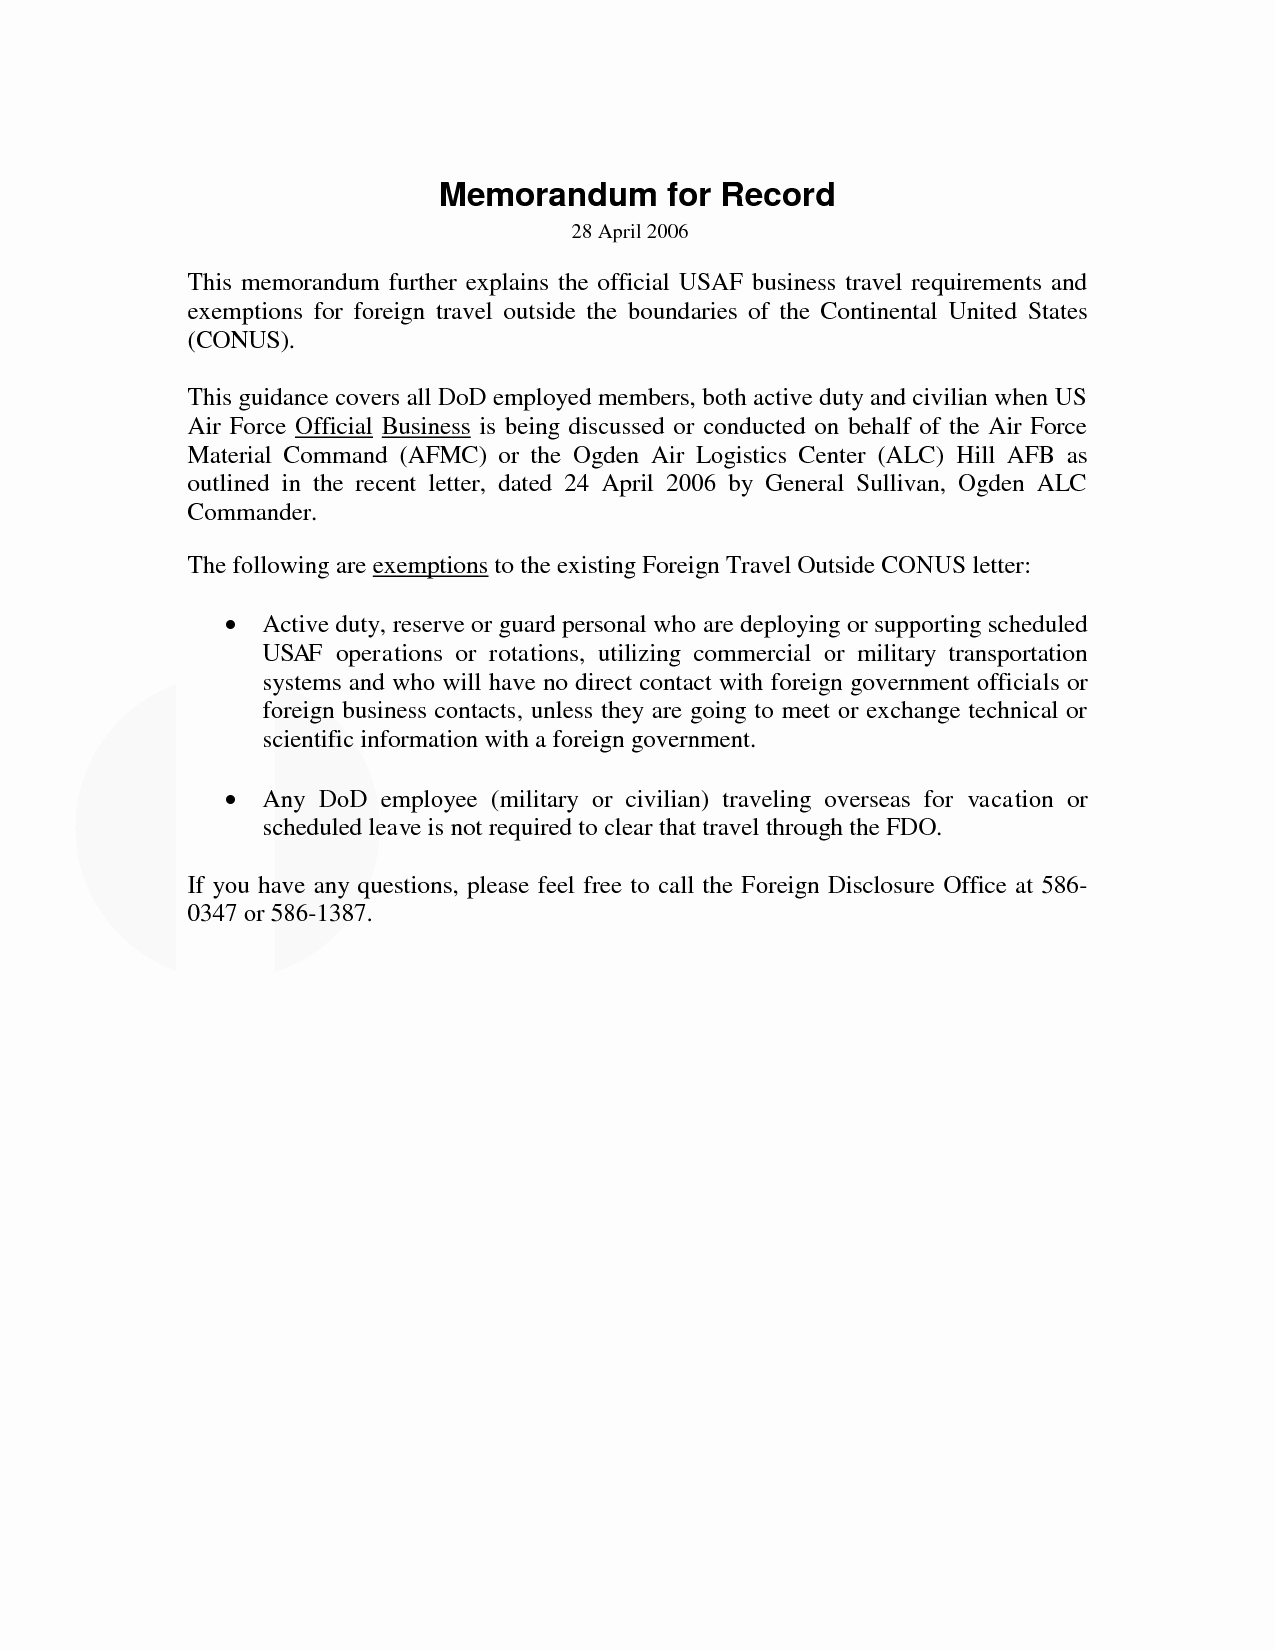 Memorandum Of Record Template Awesome 10 Best Of Memorandum for Record Example Army